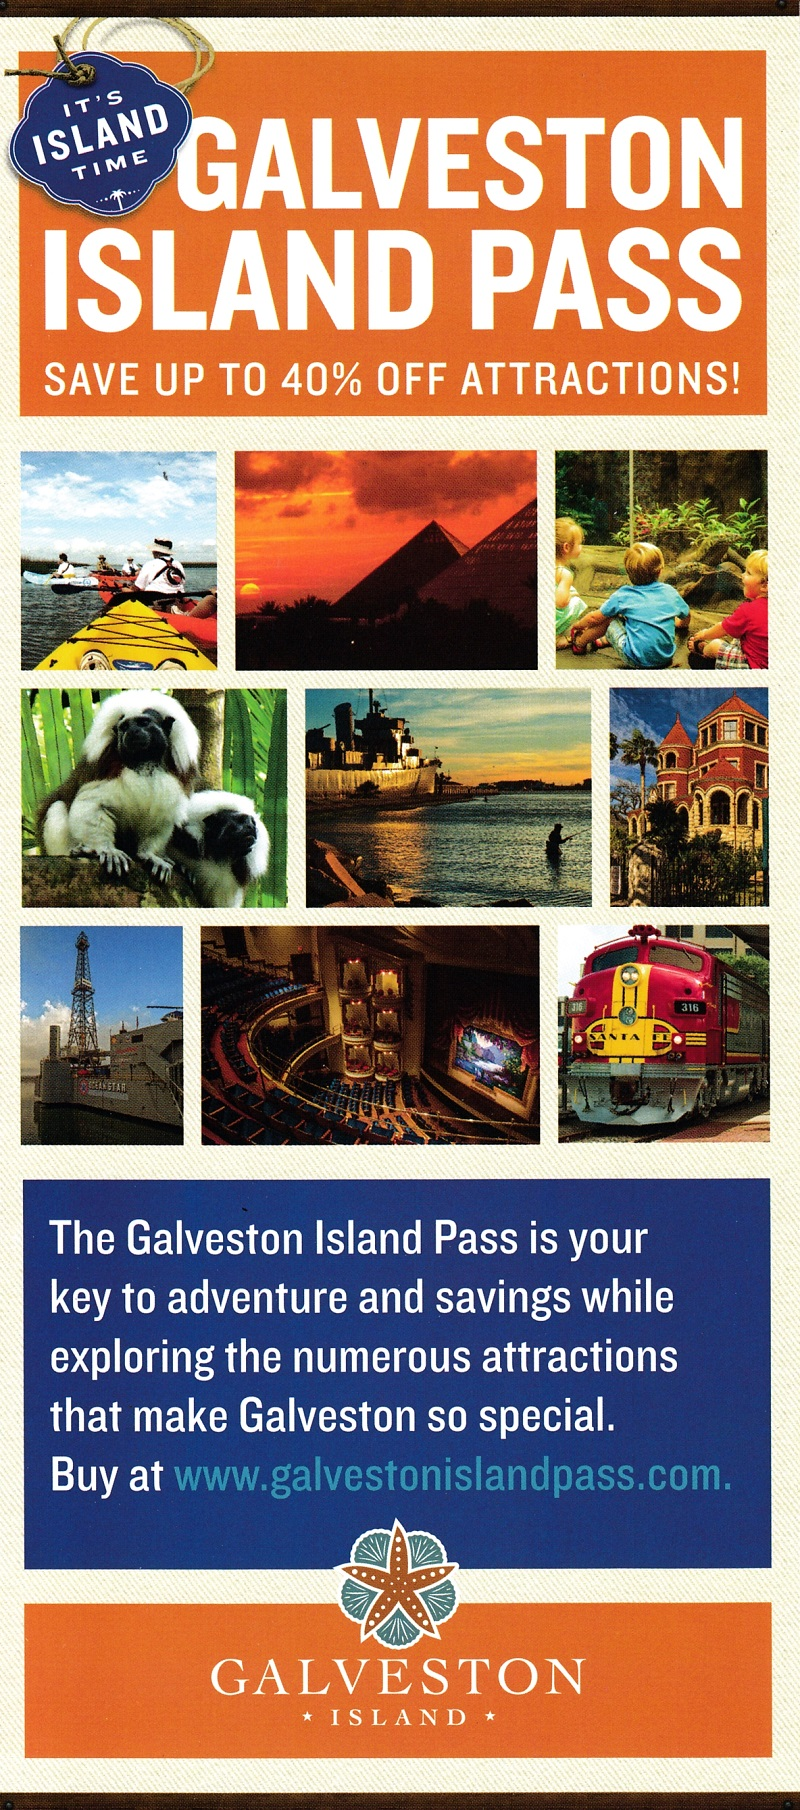 Galveston Island Pass